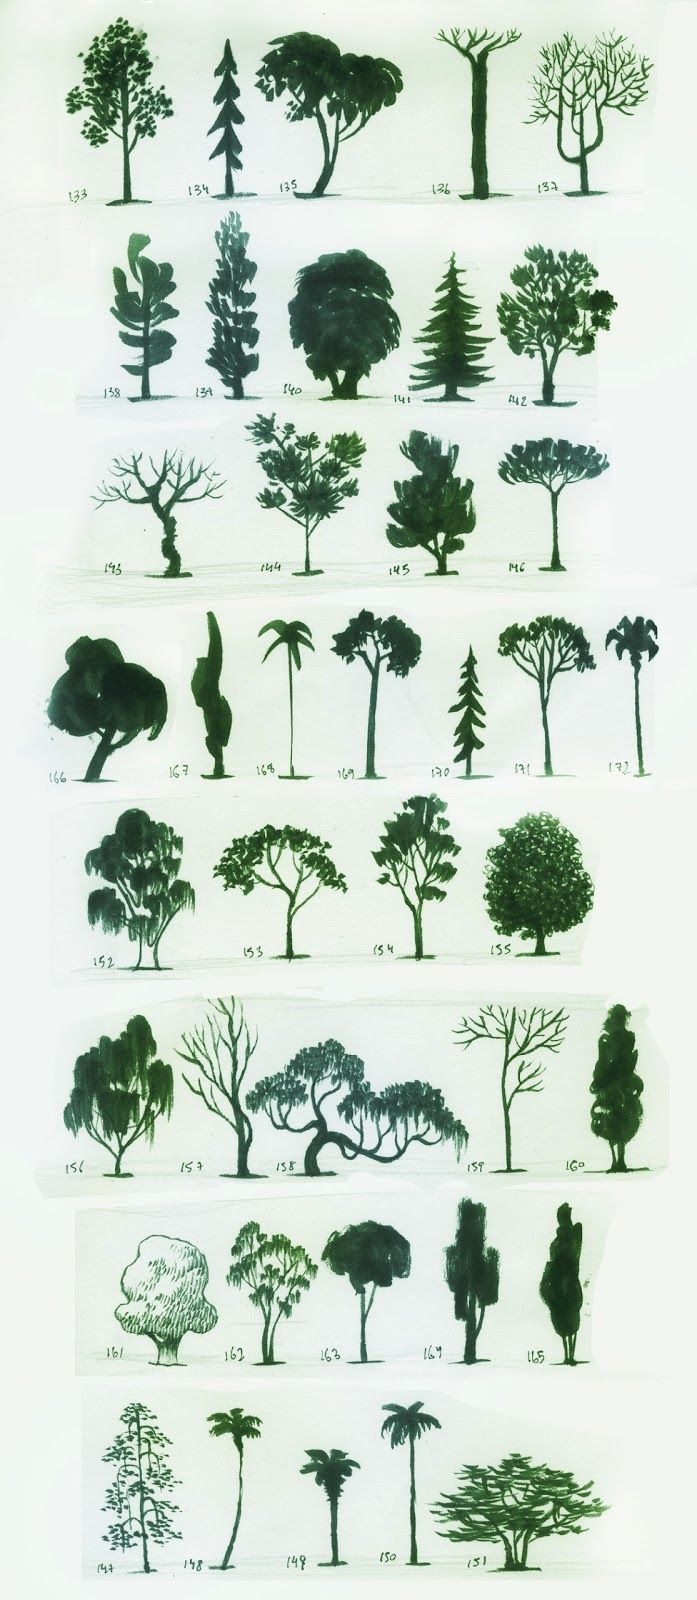 All forms of trees needed for watercolour